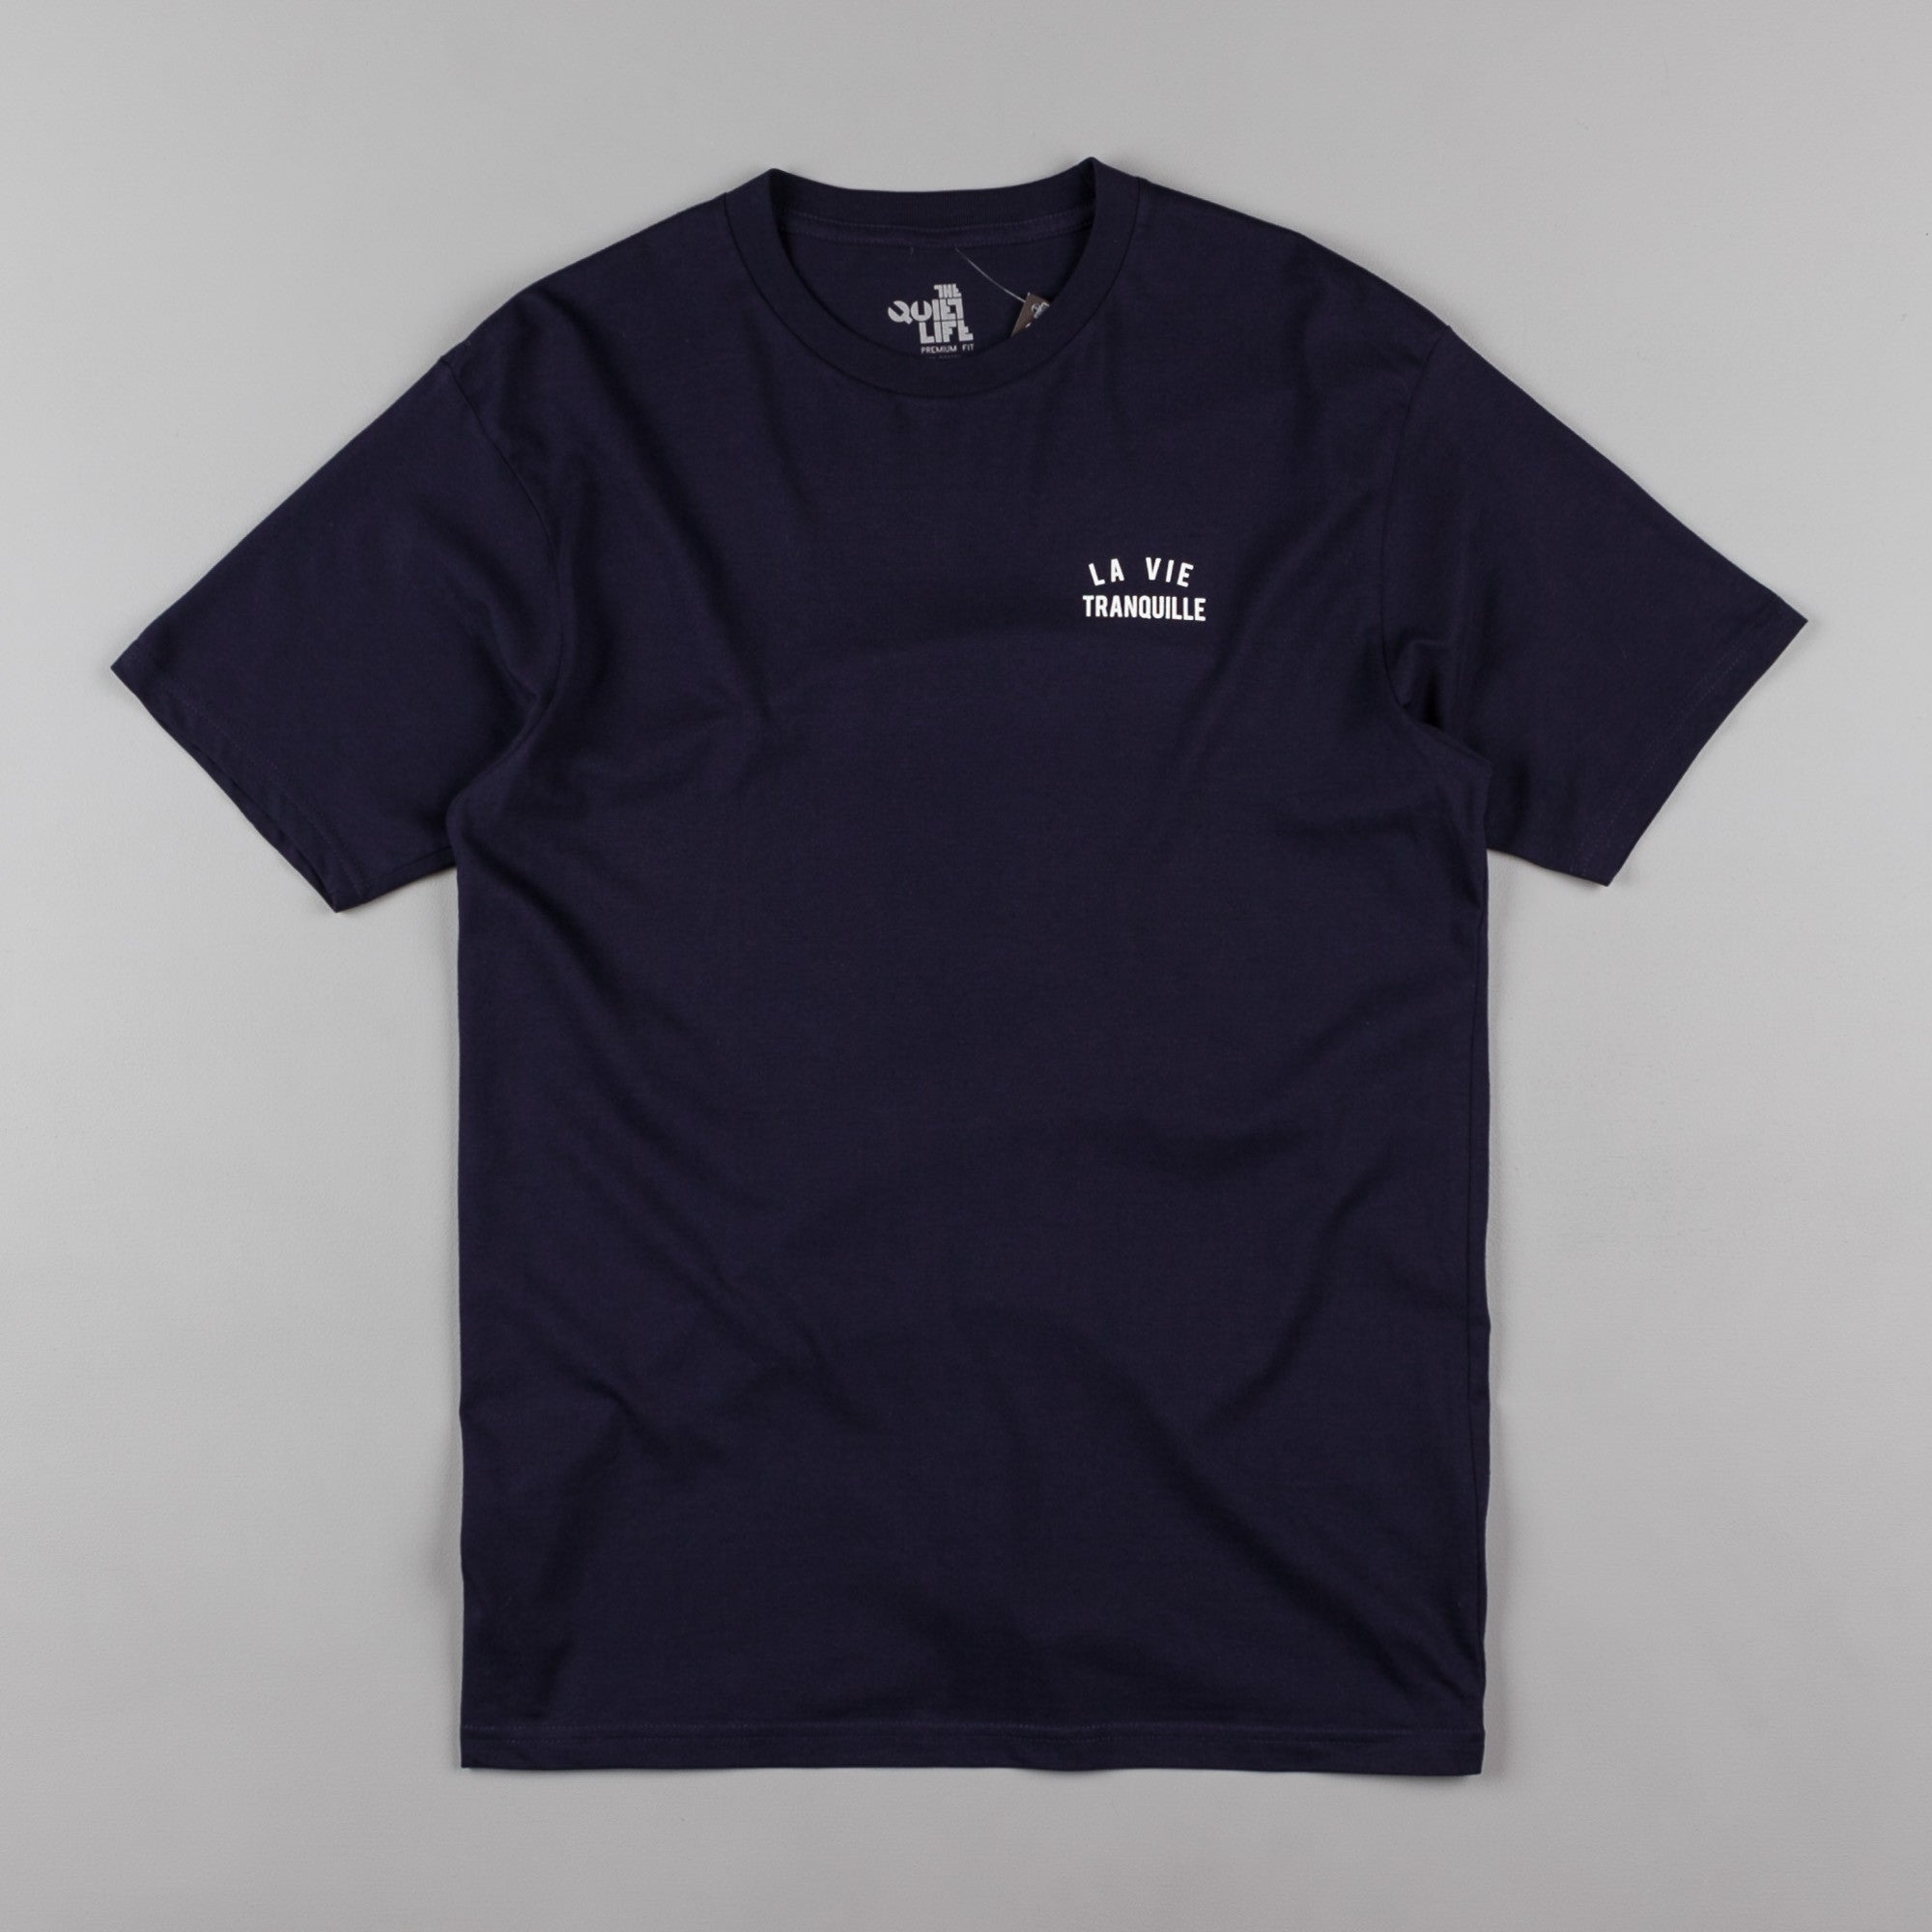 The Quiet Life La Vie Tranquille T-Shirt - Navy